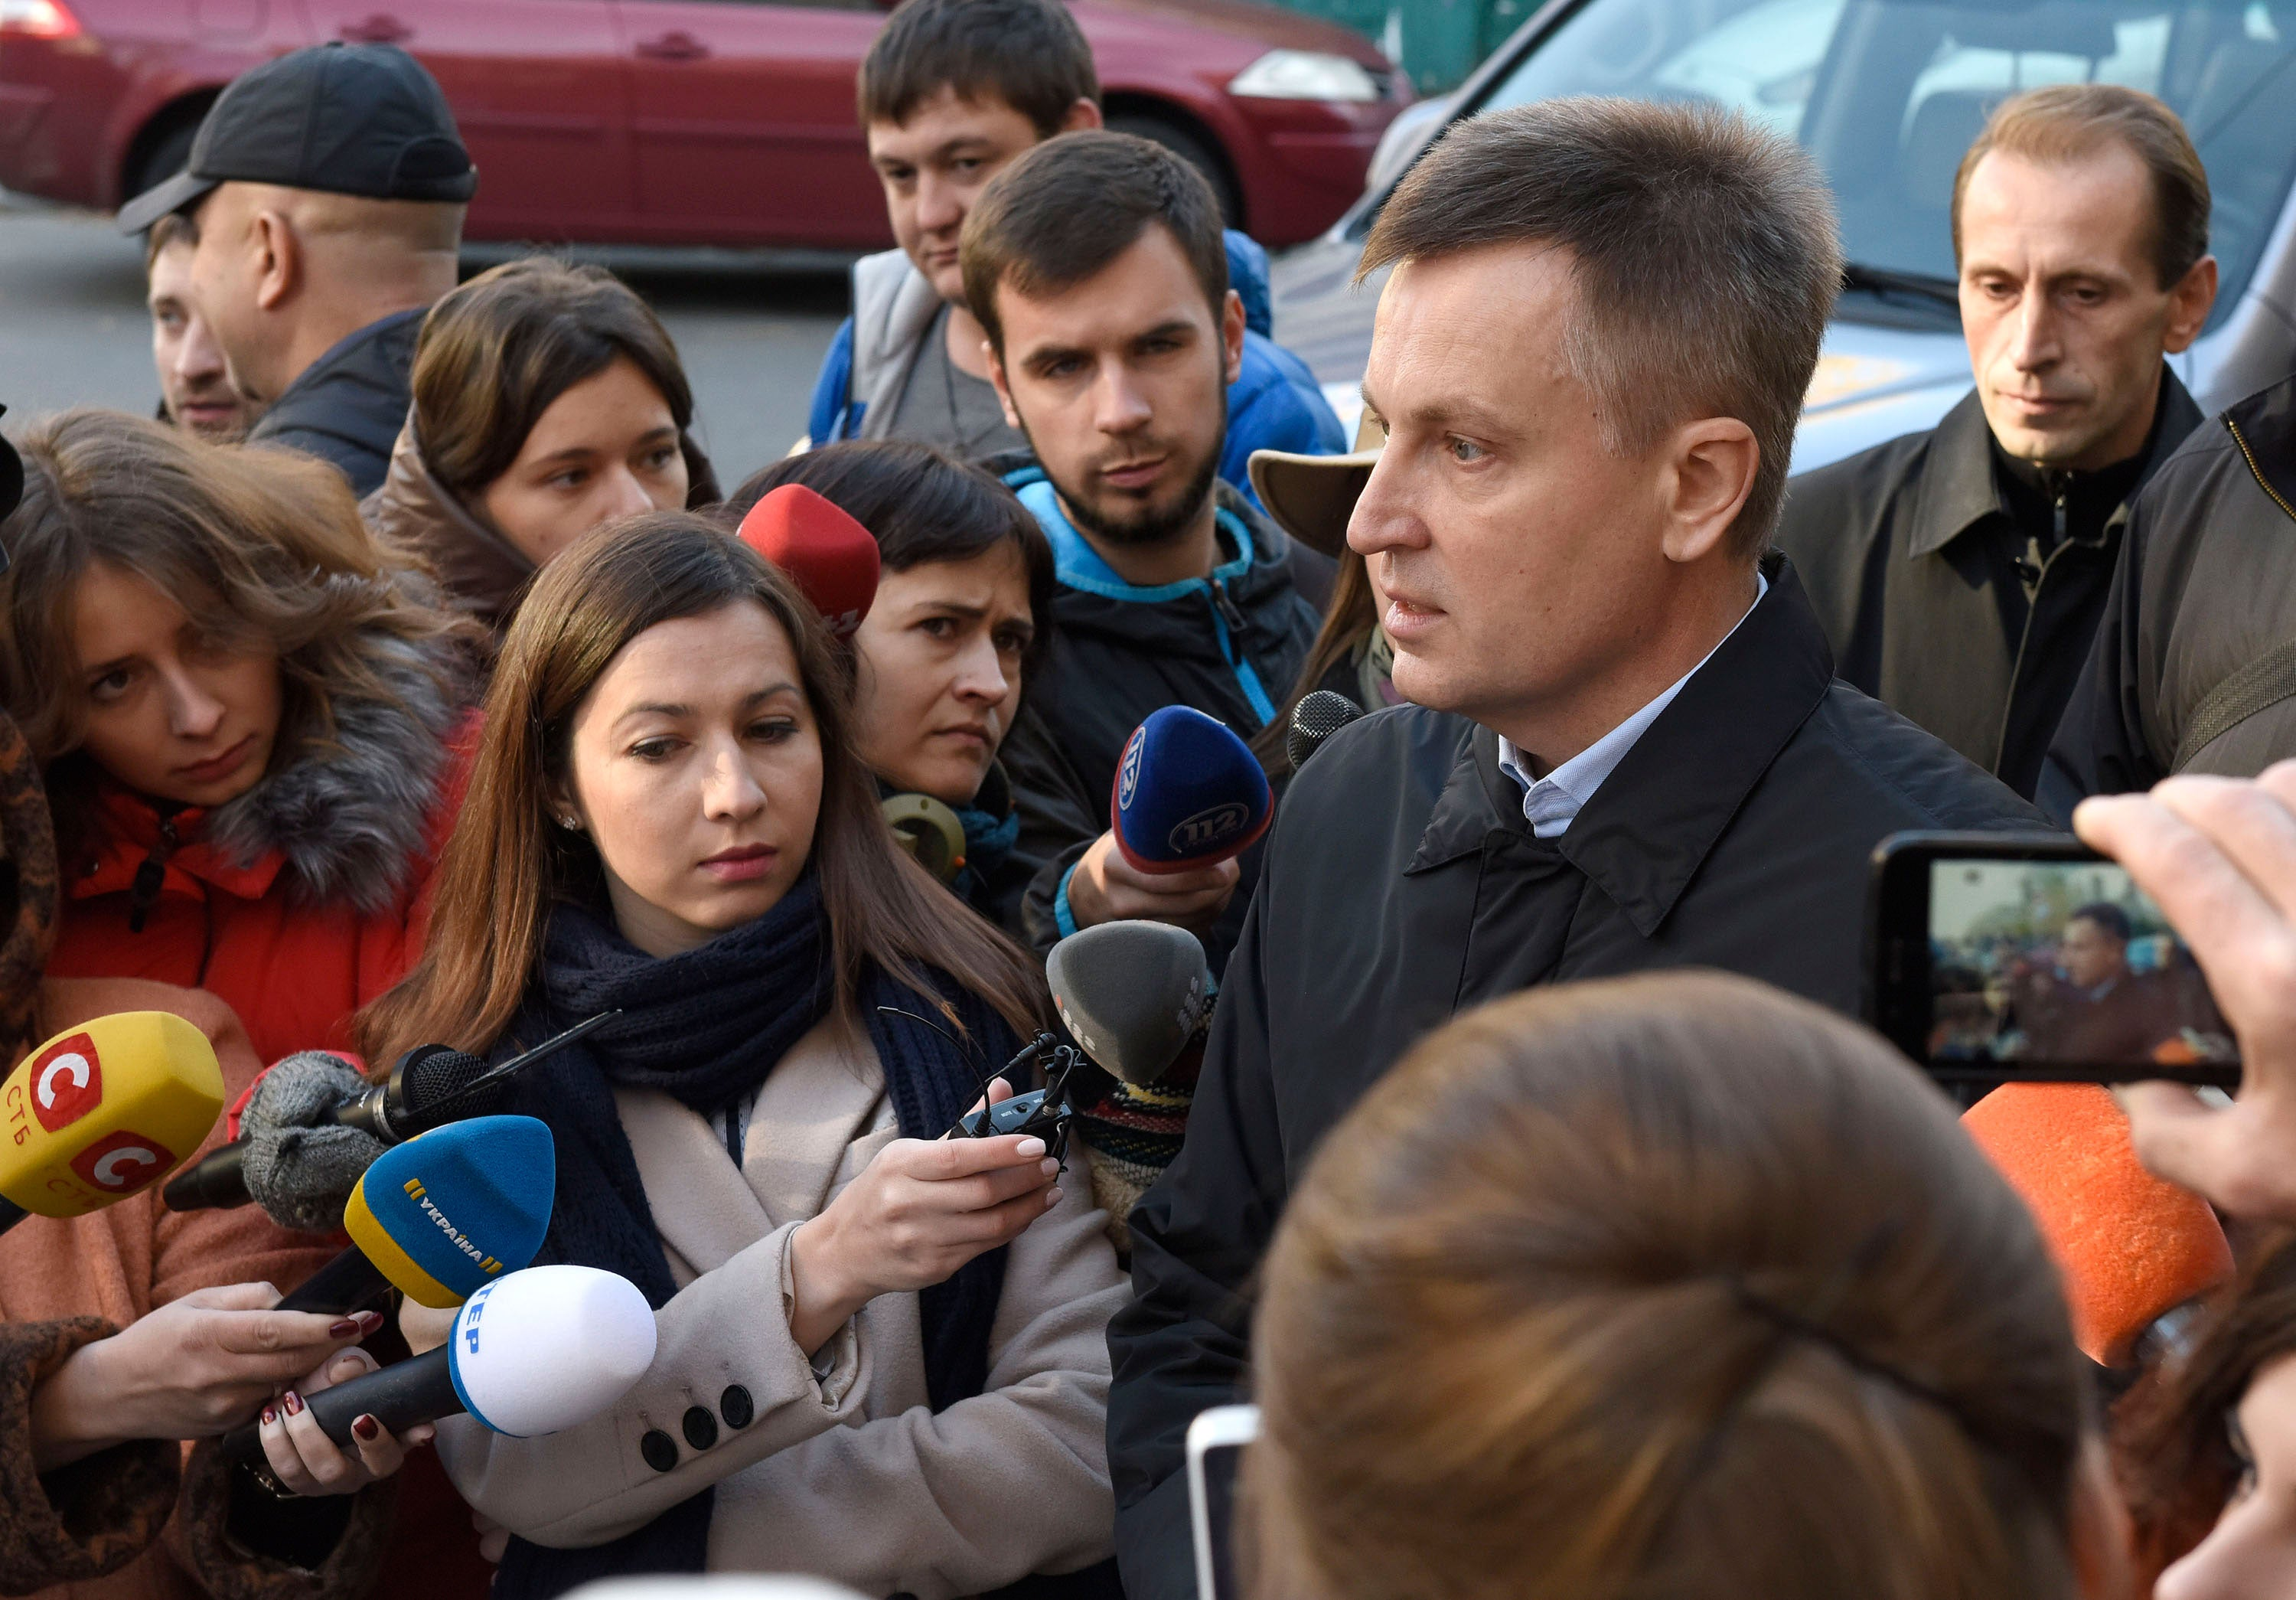 Valentyn Nalyvaichenko says he was fired from his leadership position at Ukraine's top security agency due to his anti-corruption investigations. (Photos: Courtesy of Karyna Samokhvalova)